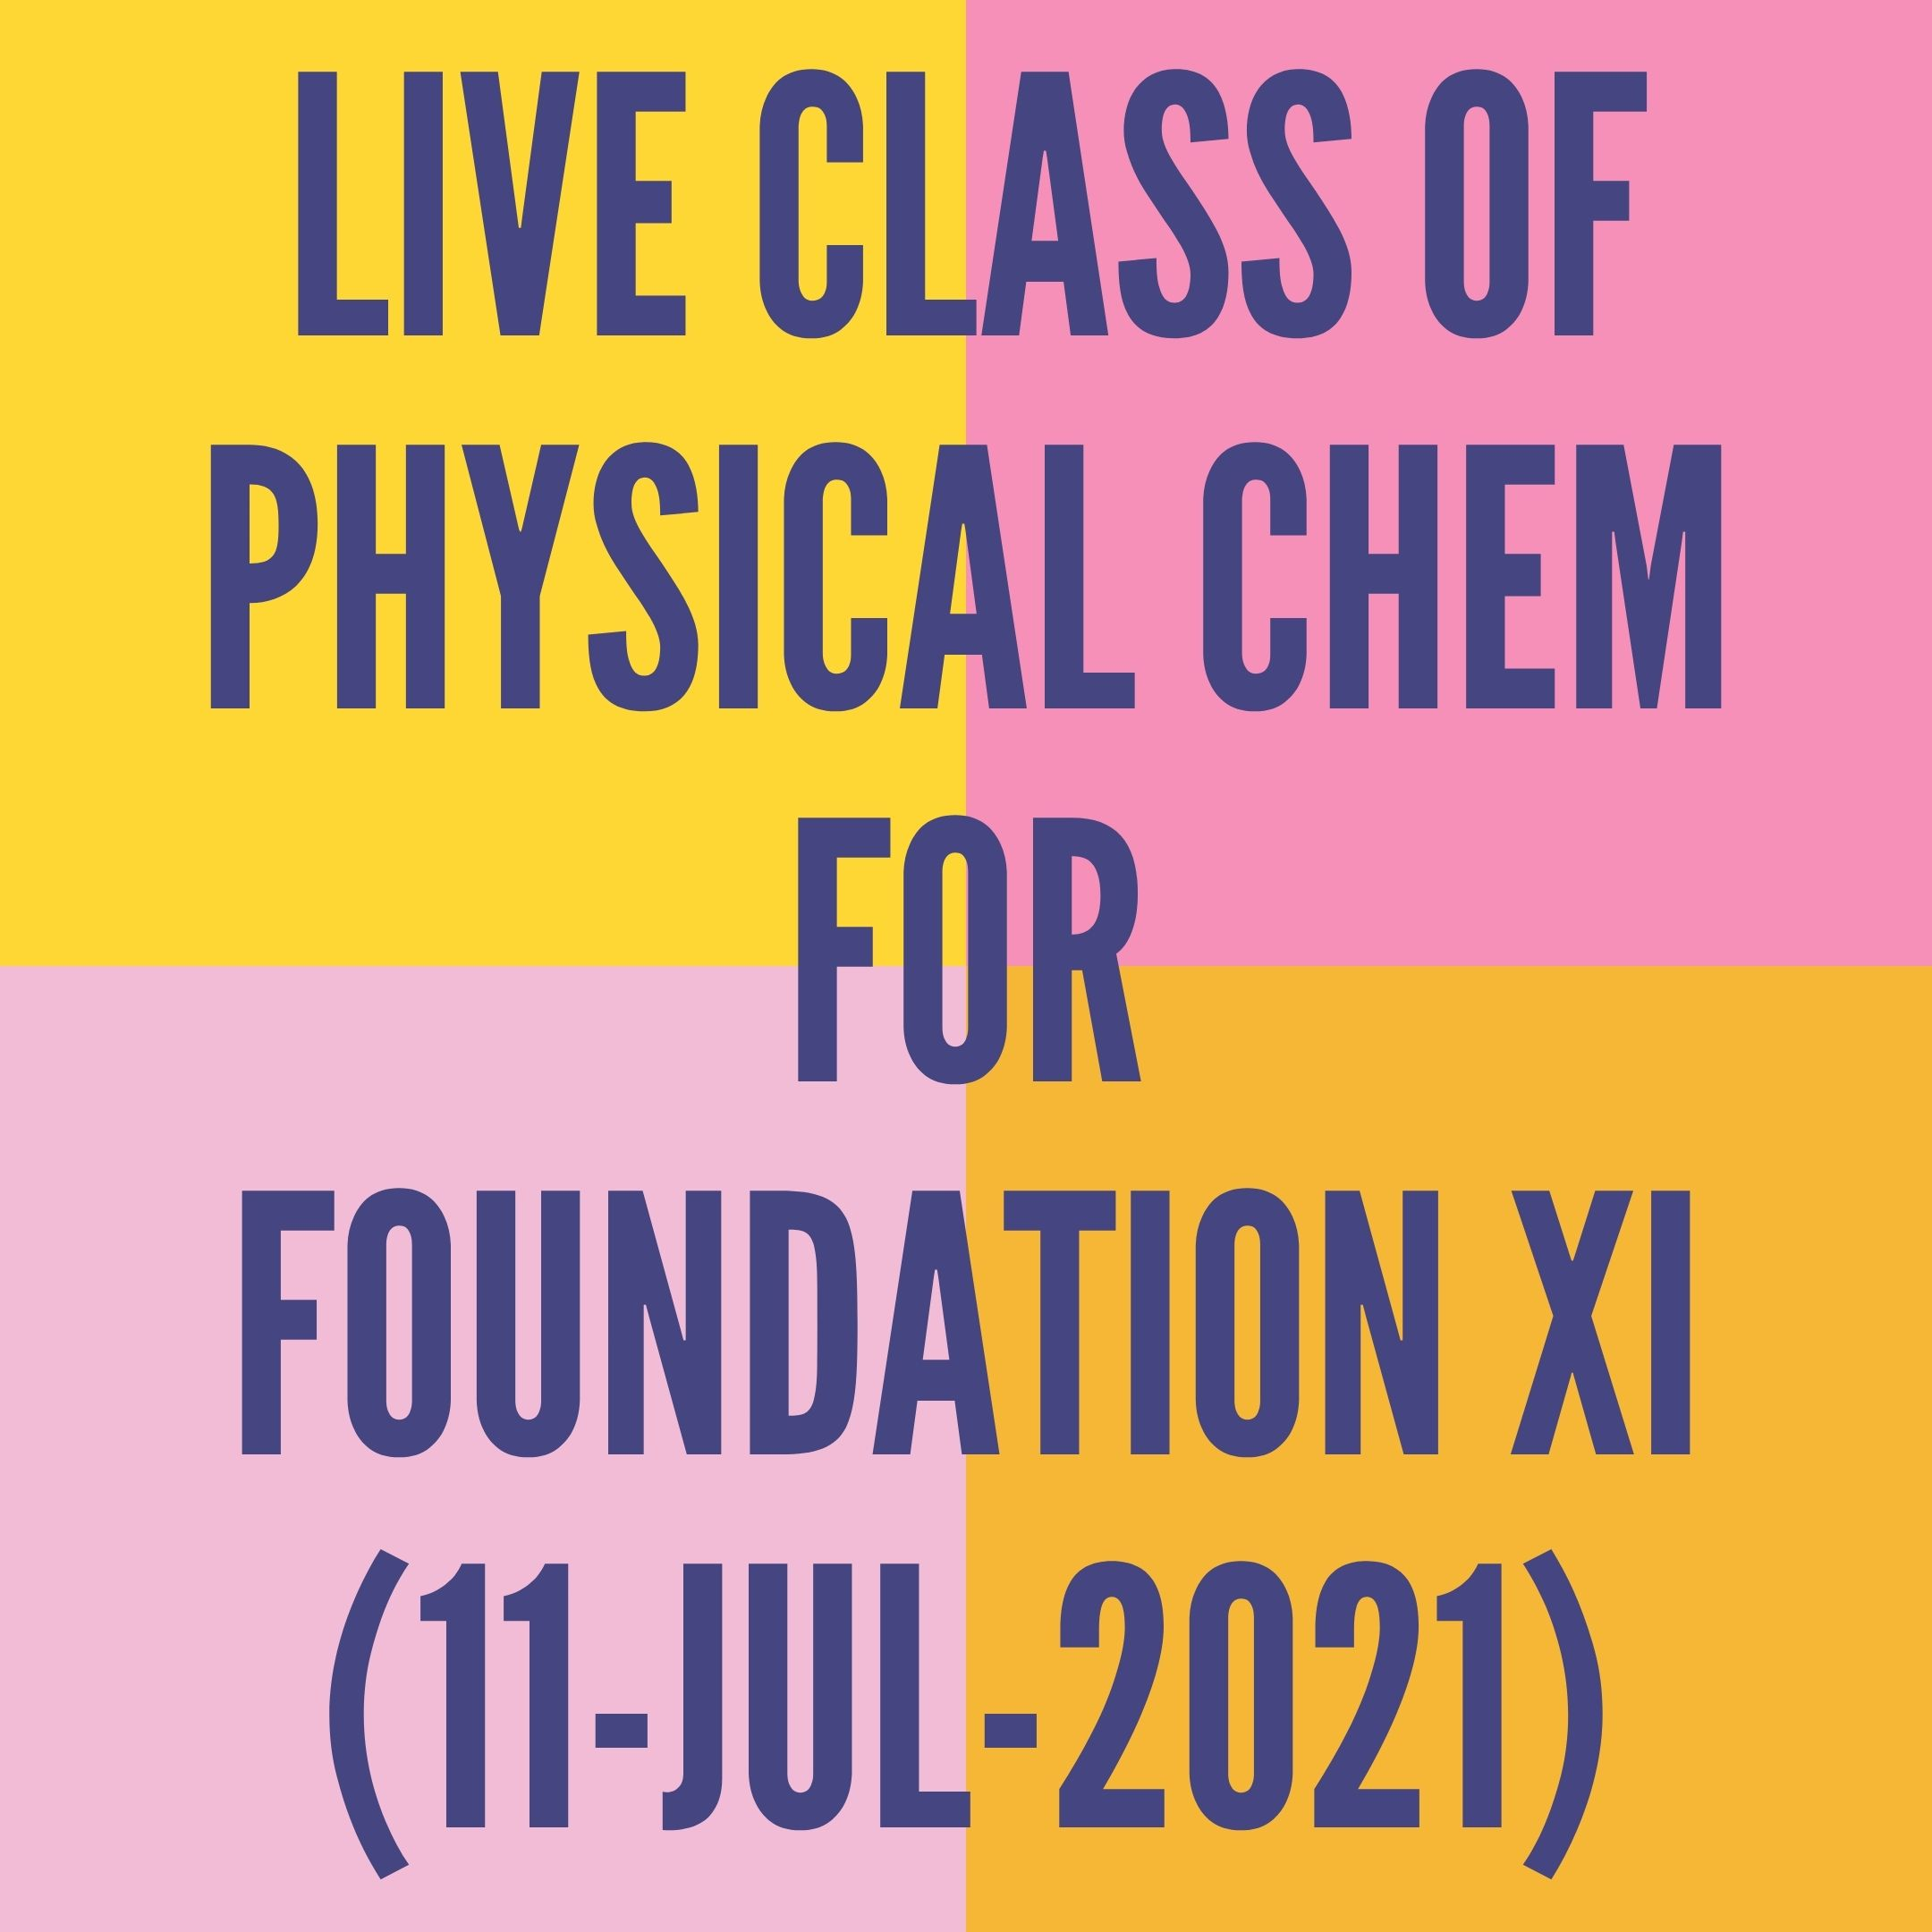 LIVE CLASS OF PHYSICAL CHEMISTRY FOR FOUNDATION XI (11-JUL-2021) CONCENTRATION OF SOLUTION